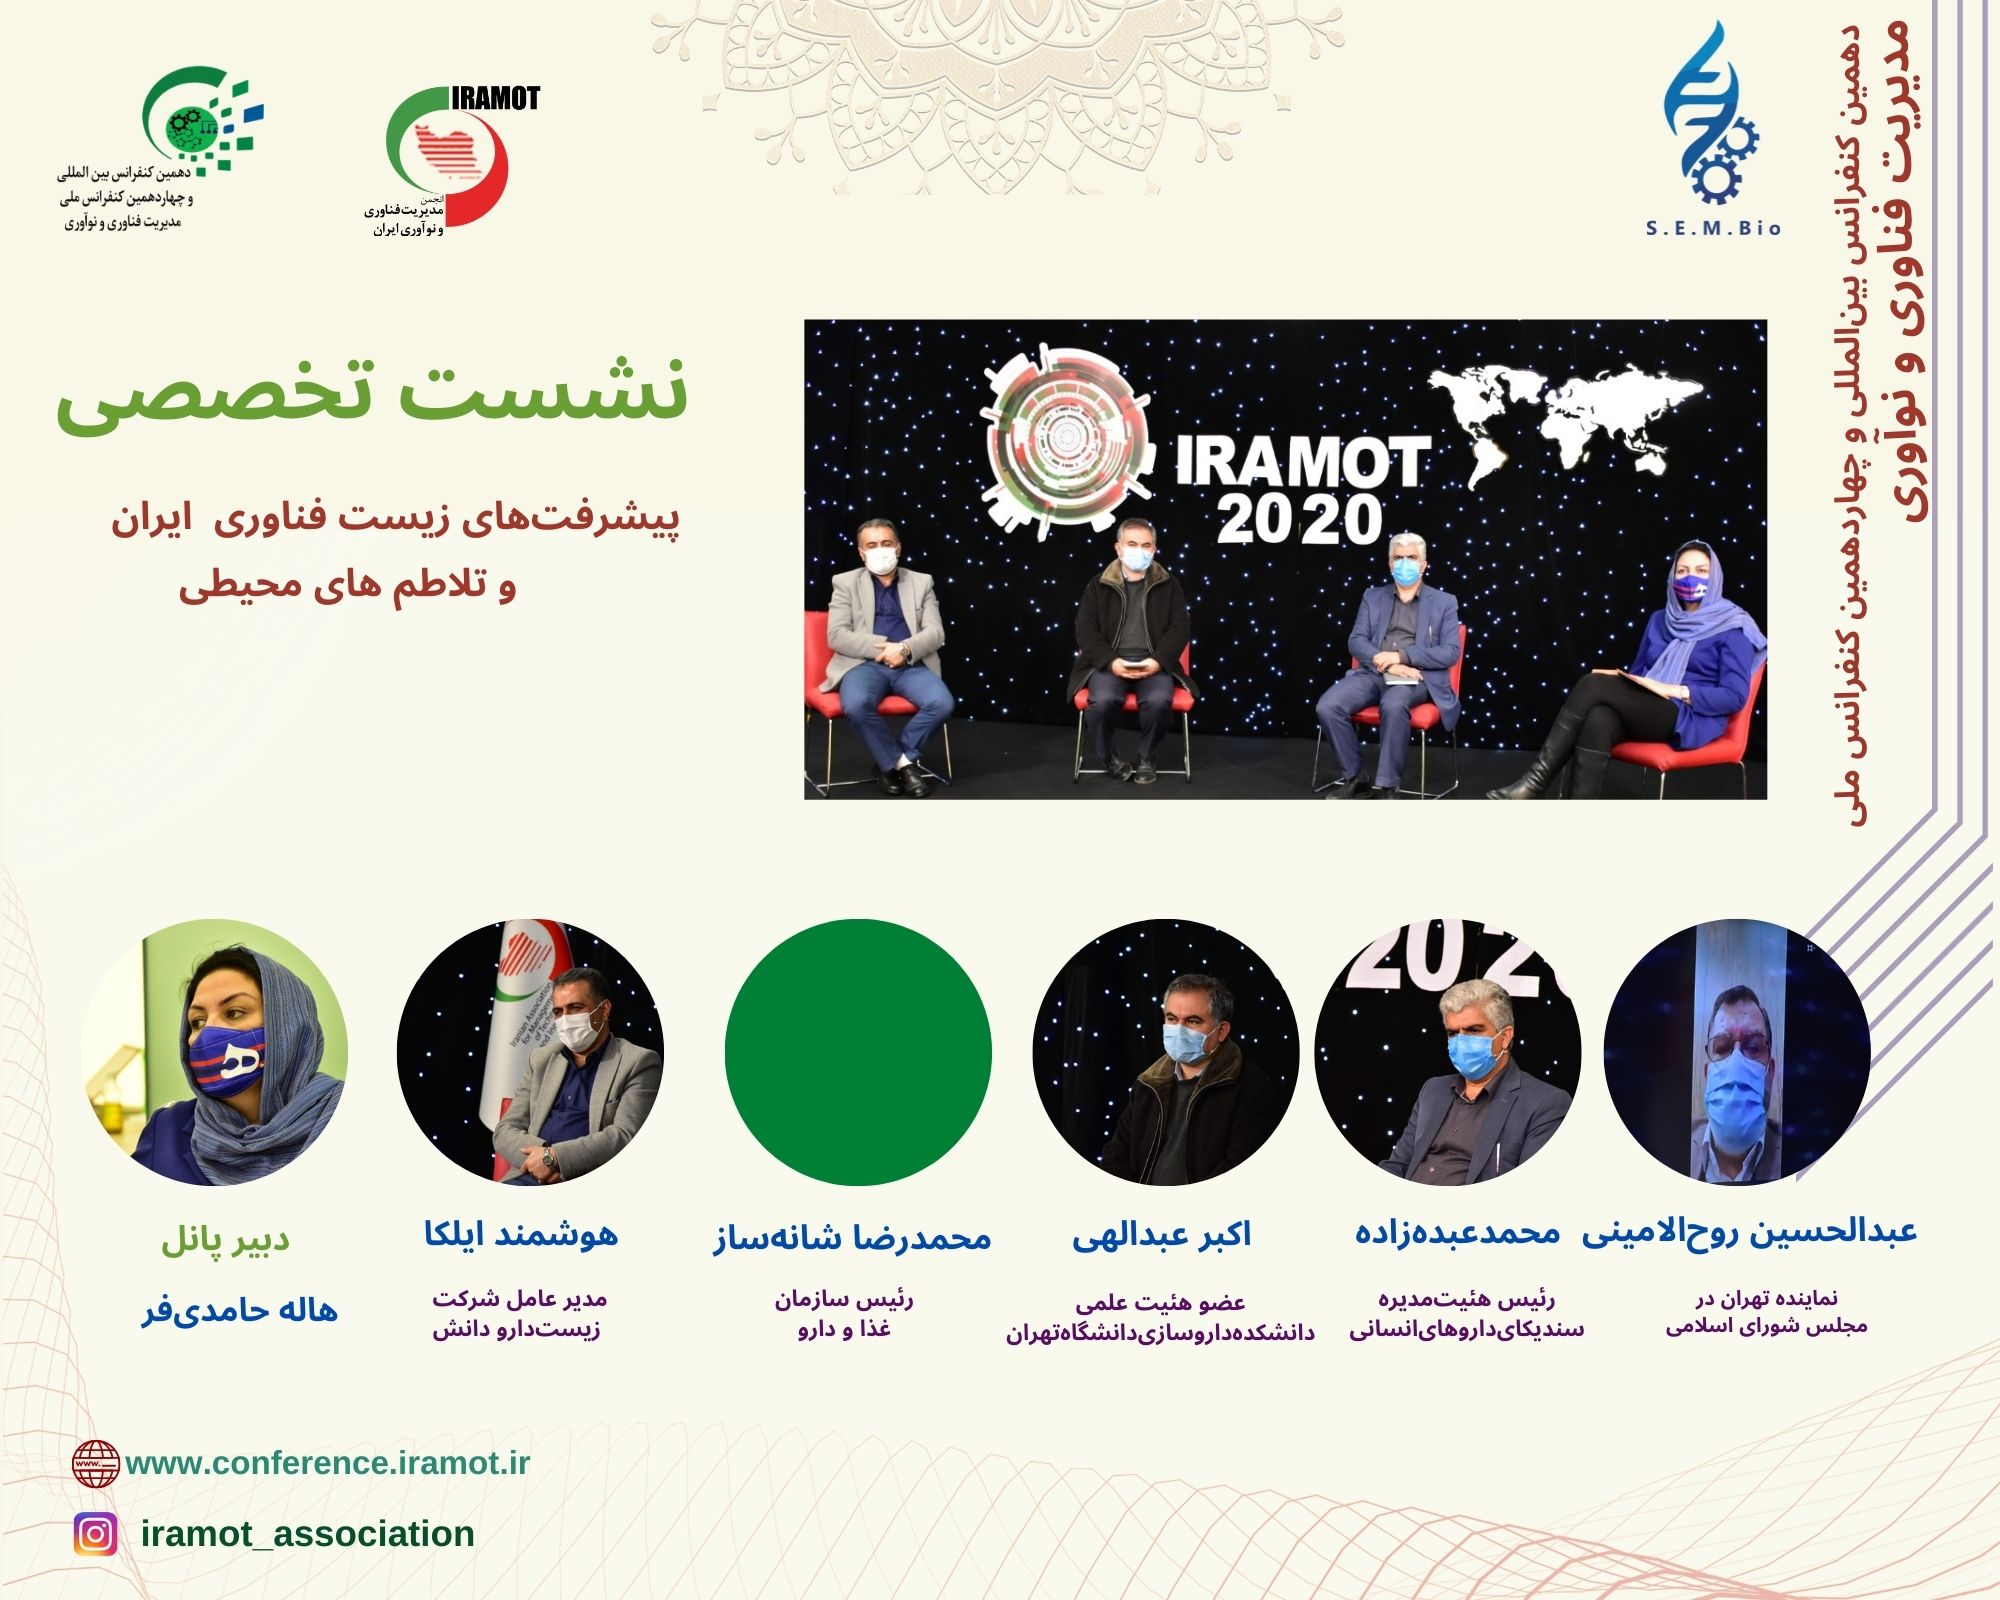 http://www.conference.iramot.ir/wp-content/uploads/2020/12/پانل-تخصصی-2.jpg